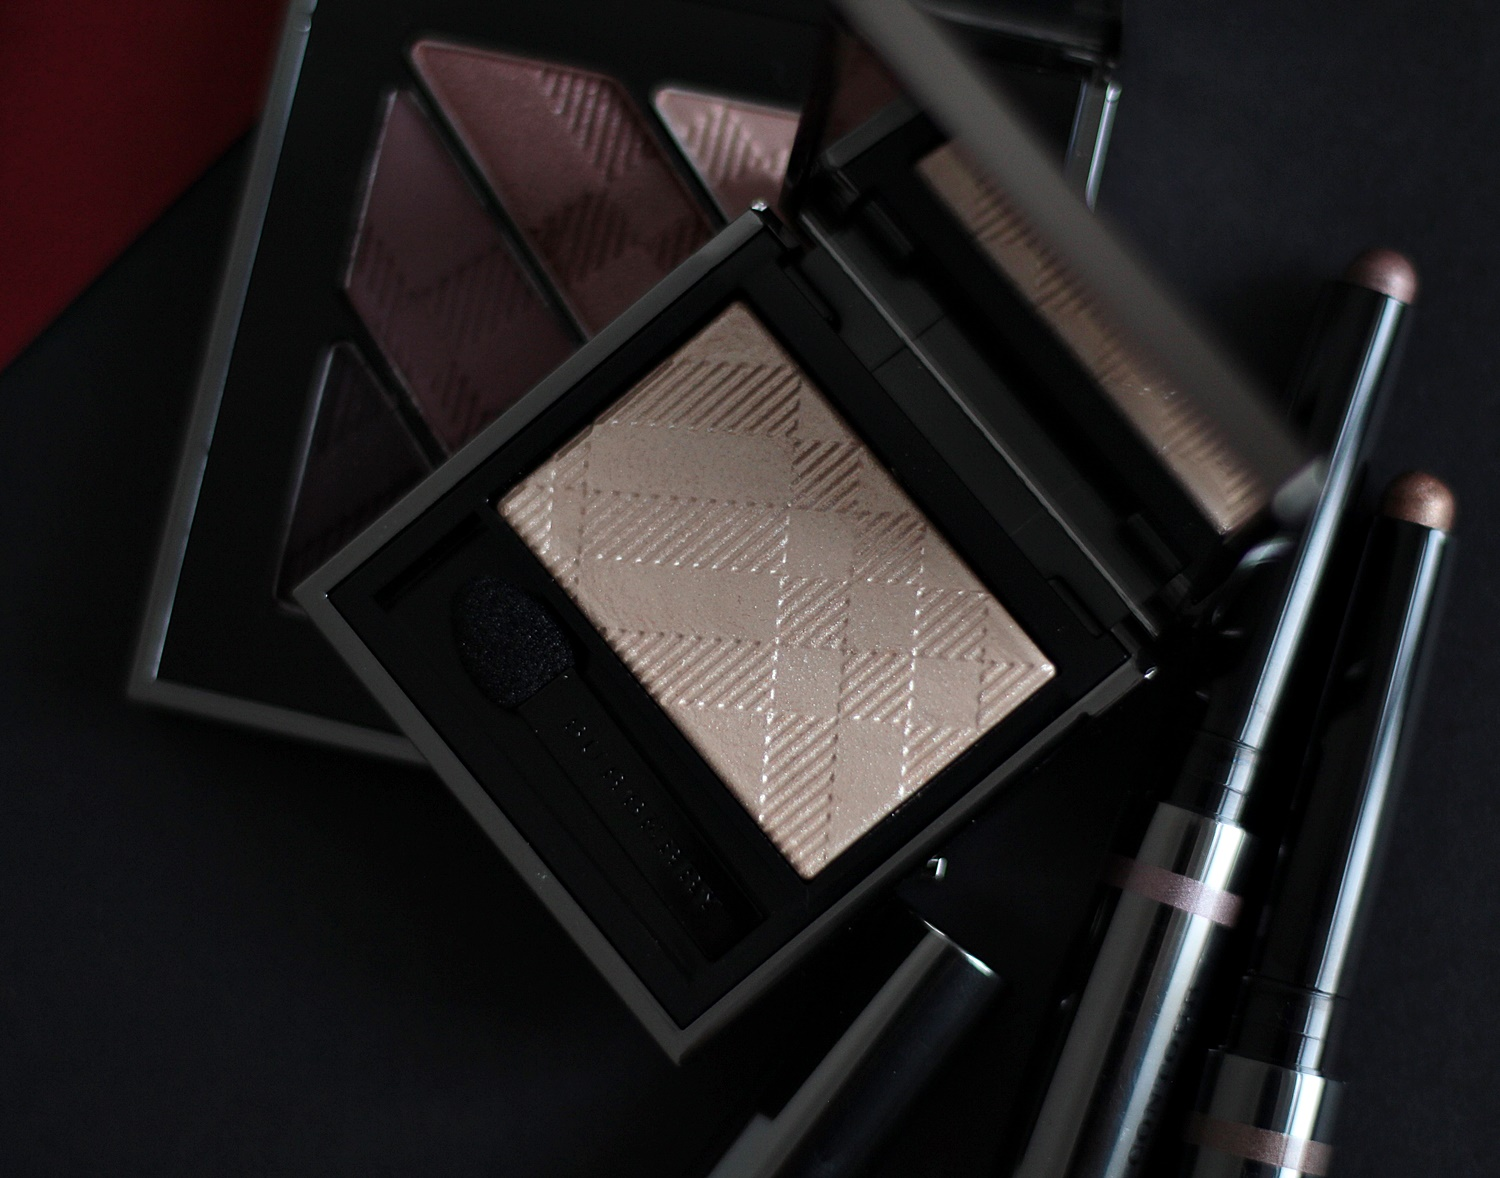 burberry-wet-dry-glow-shadow-gold-pearl